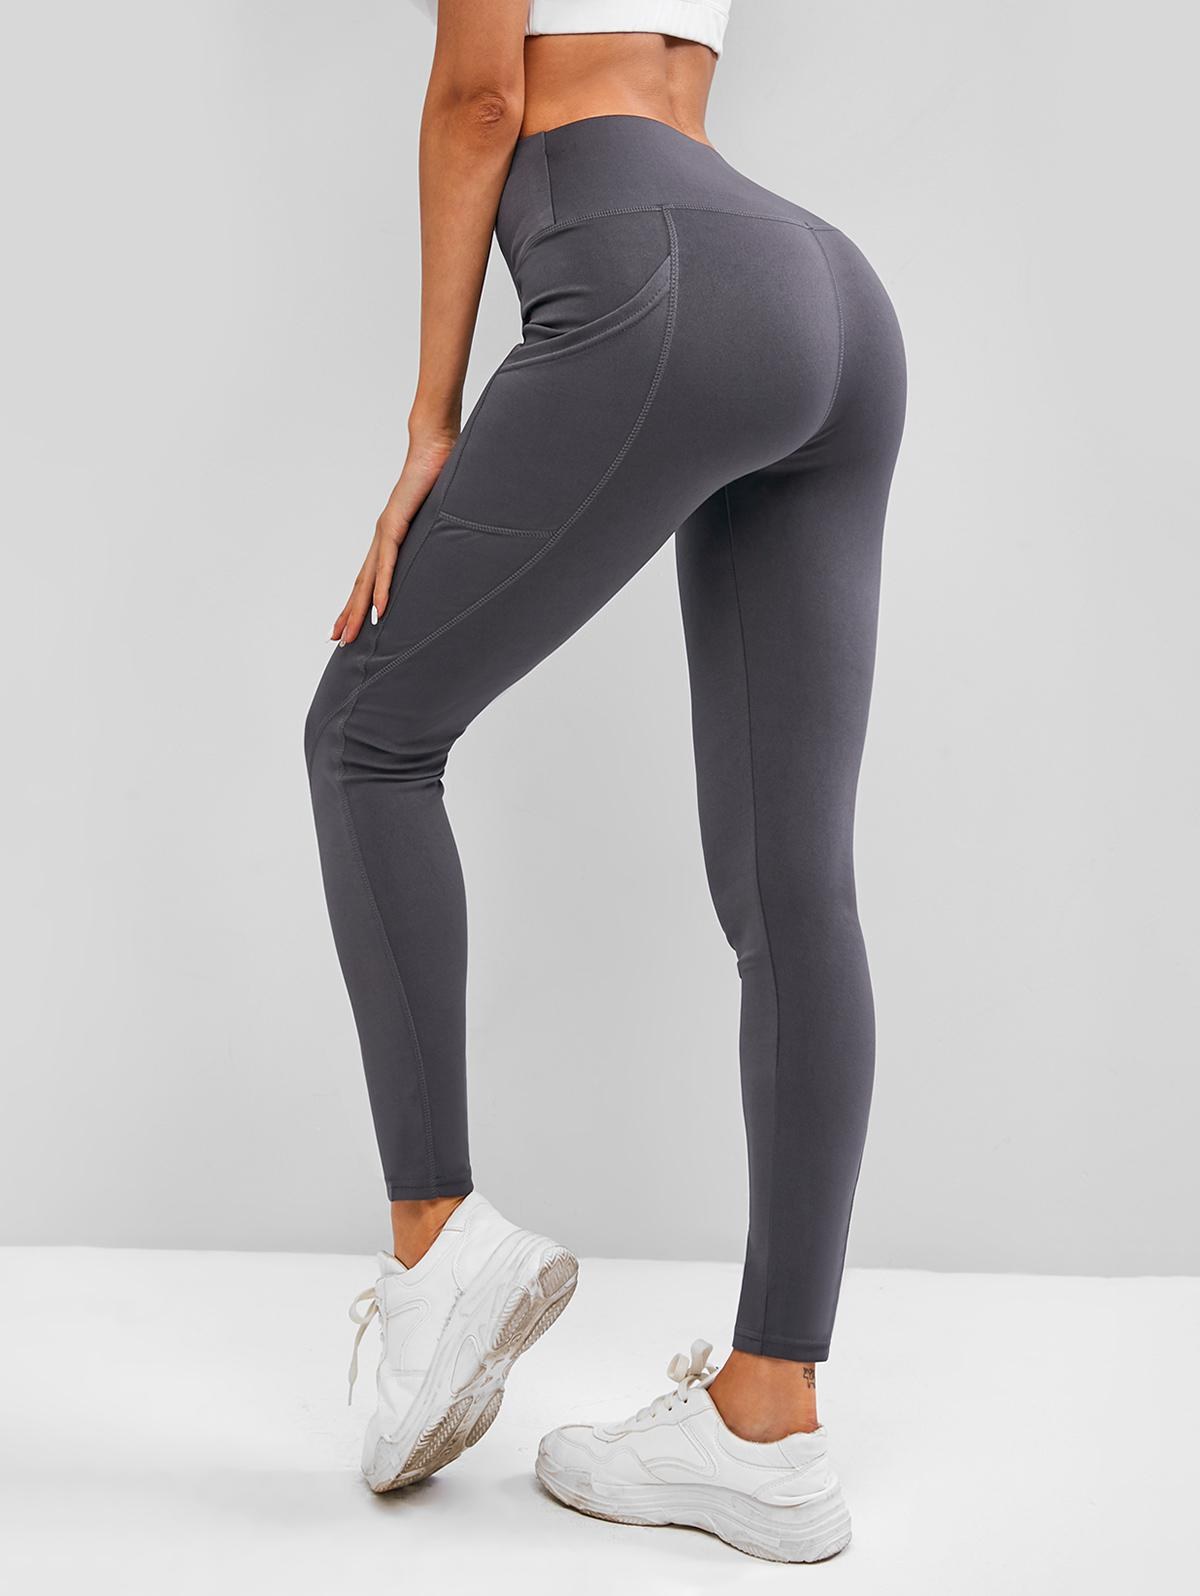 Wide Waistband Topstitch Pocket Workout Gym Leggings